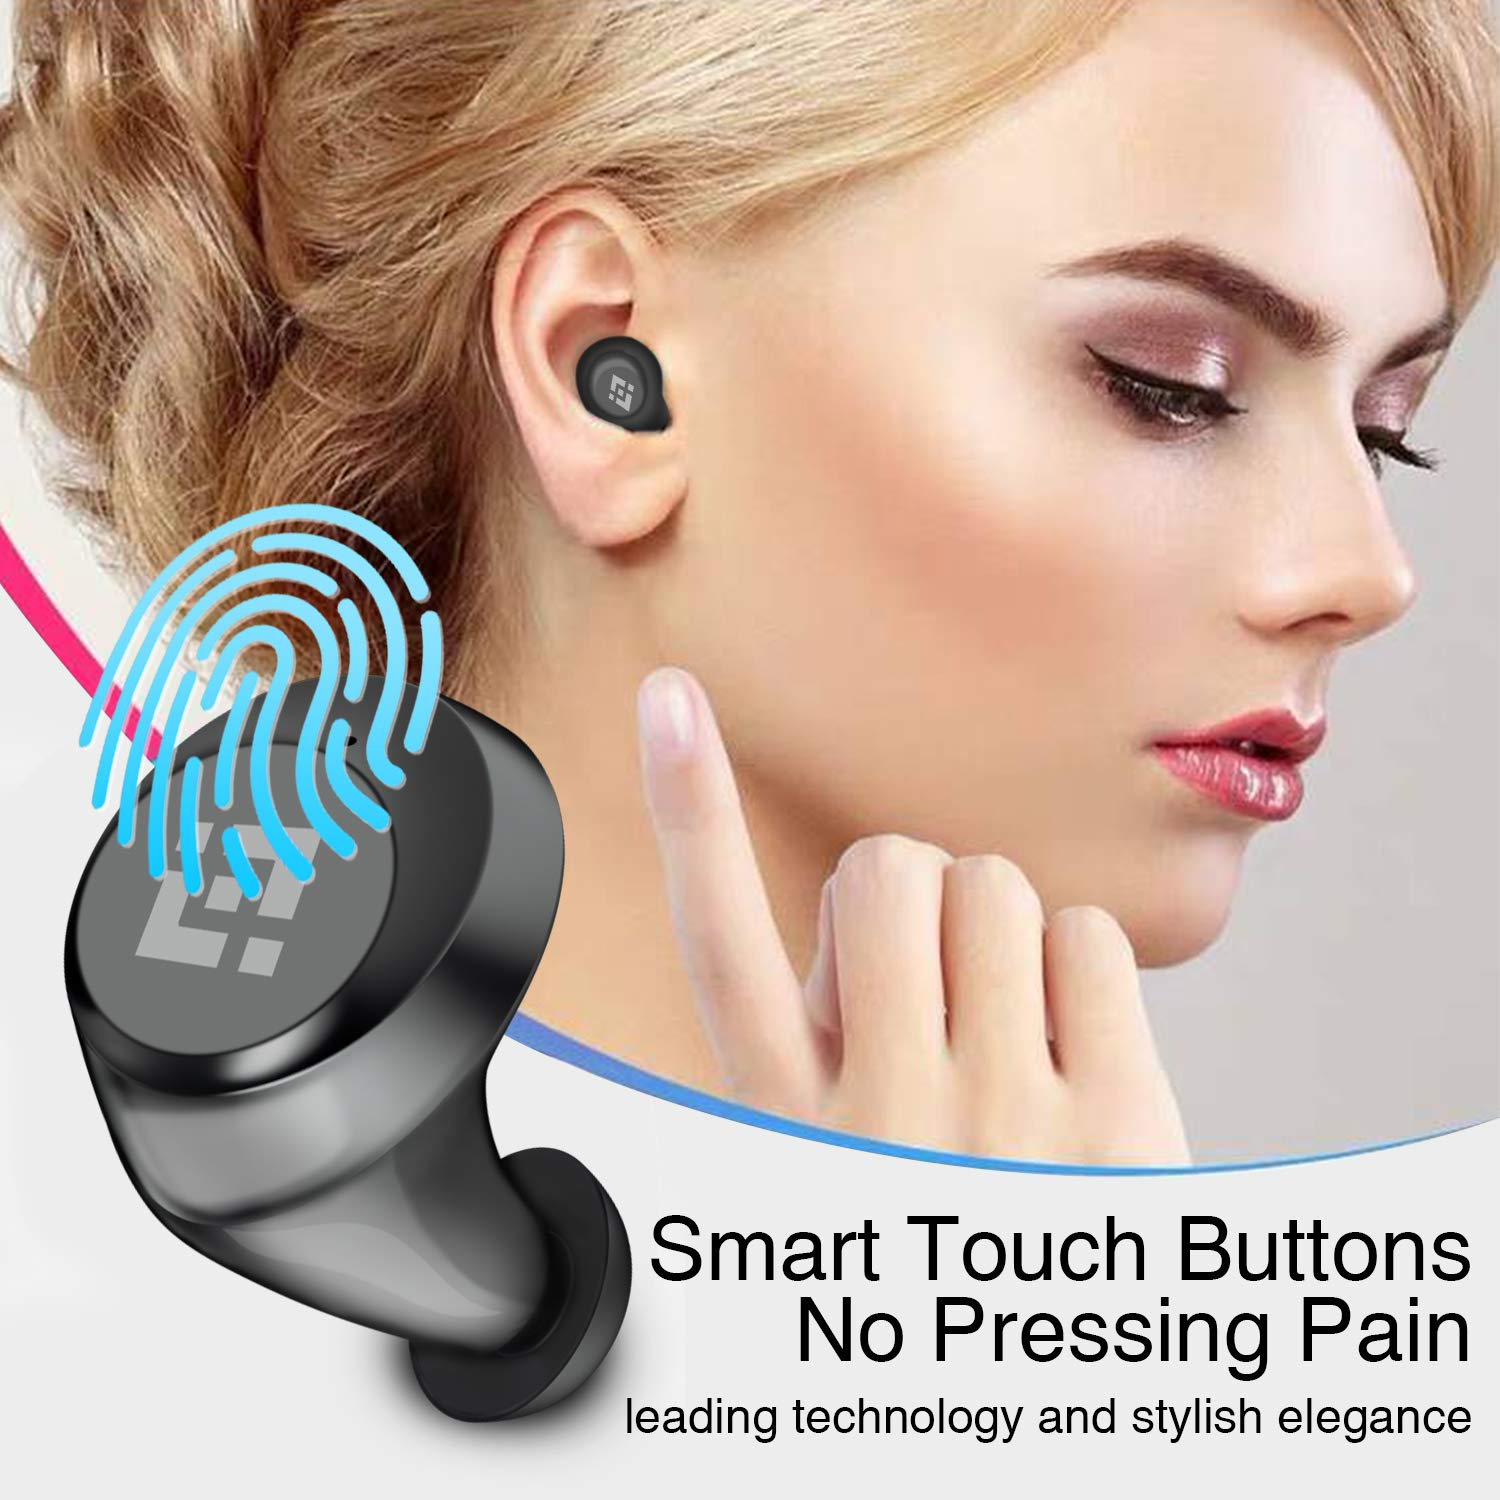 Wireless Earbuds 【Upgraded Graphene 3D Stereo Sound】 Bluetooth 5.0 with 28Hr Play Time Noise Cancelling HonShoop Lightweight Bluetooth Headphones Built-in Mic (Black) (Matte Black) by HonShoop (Image #5)